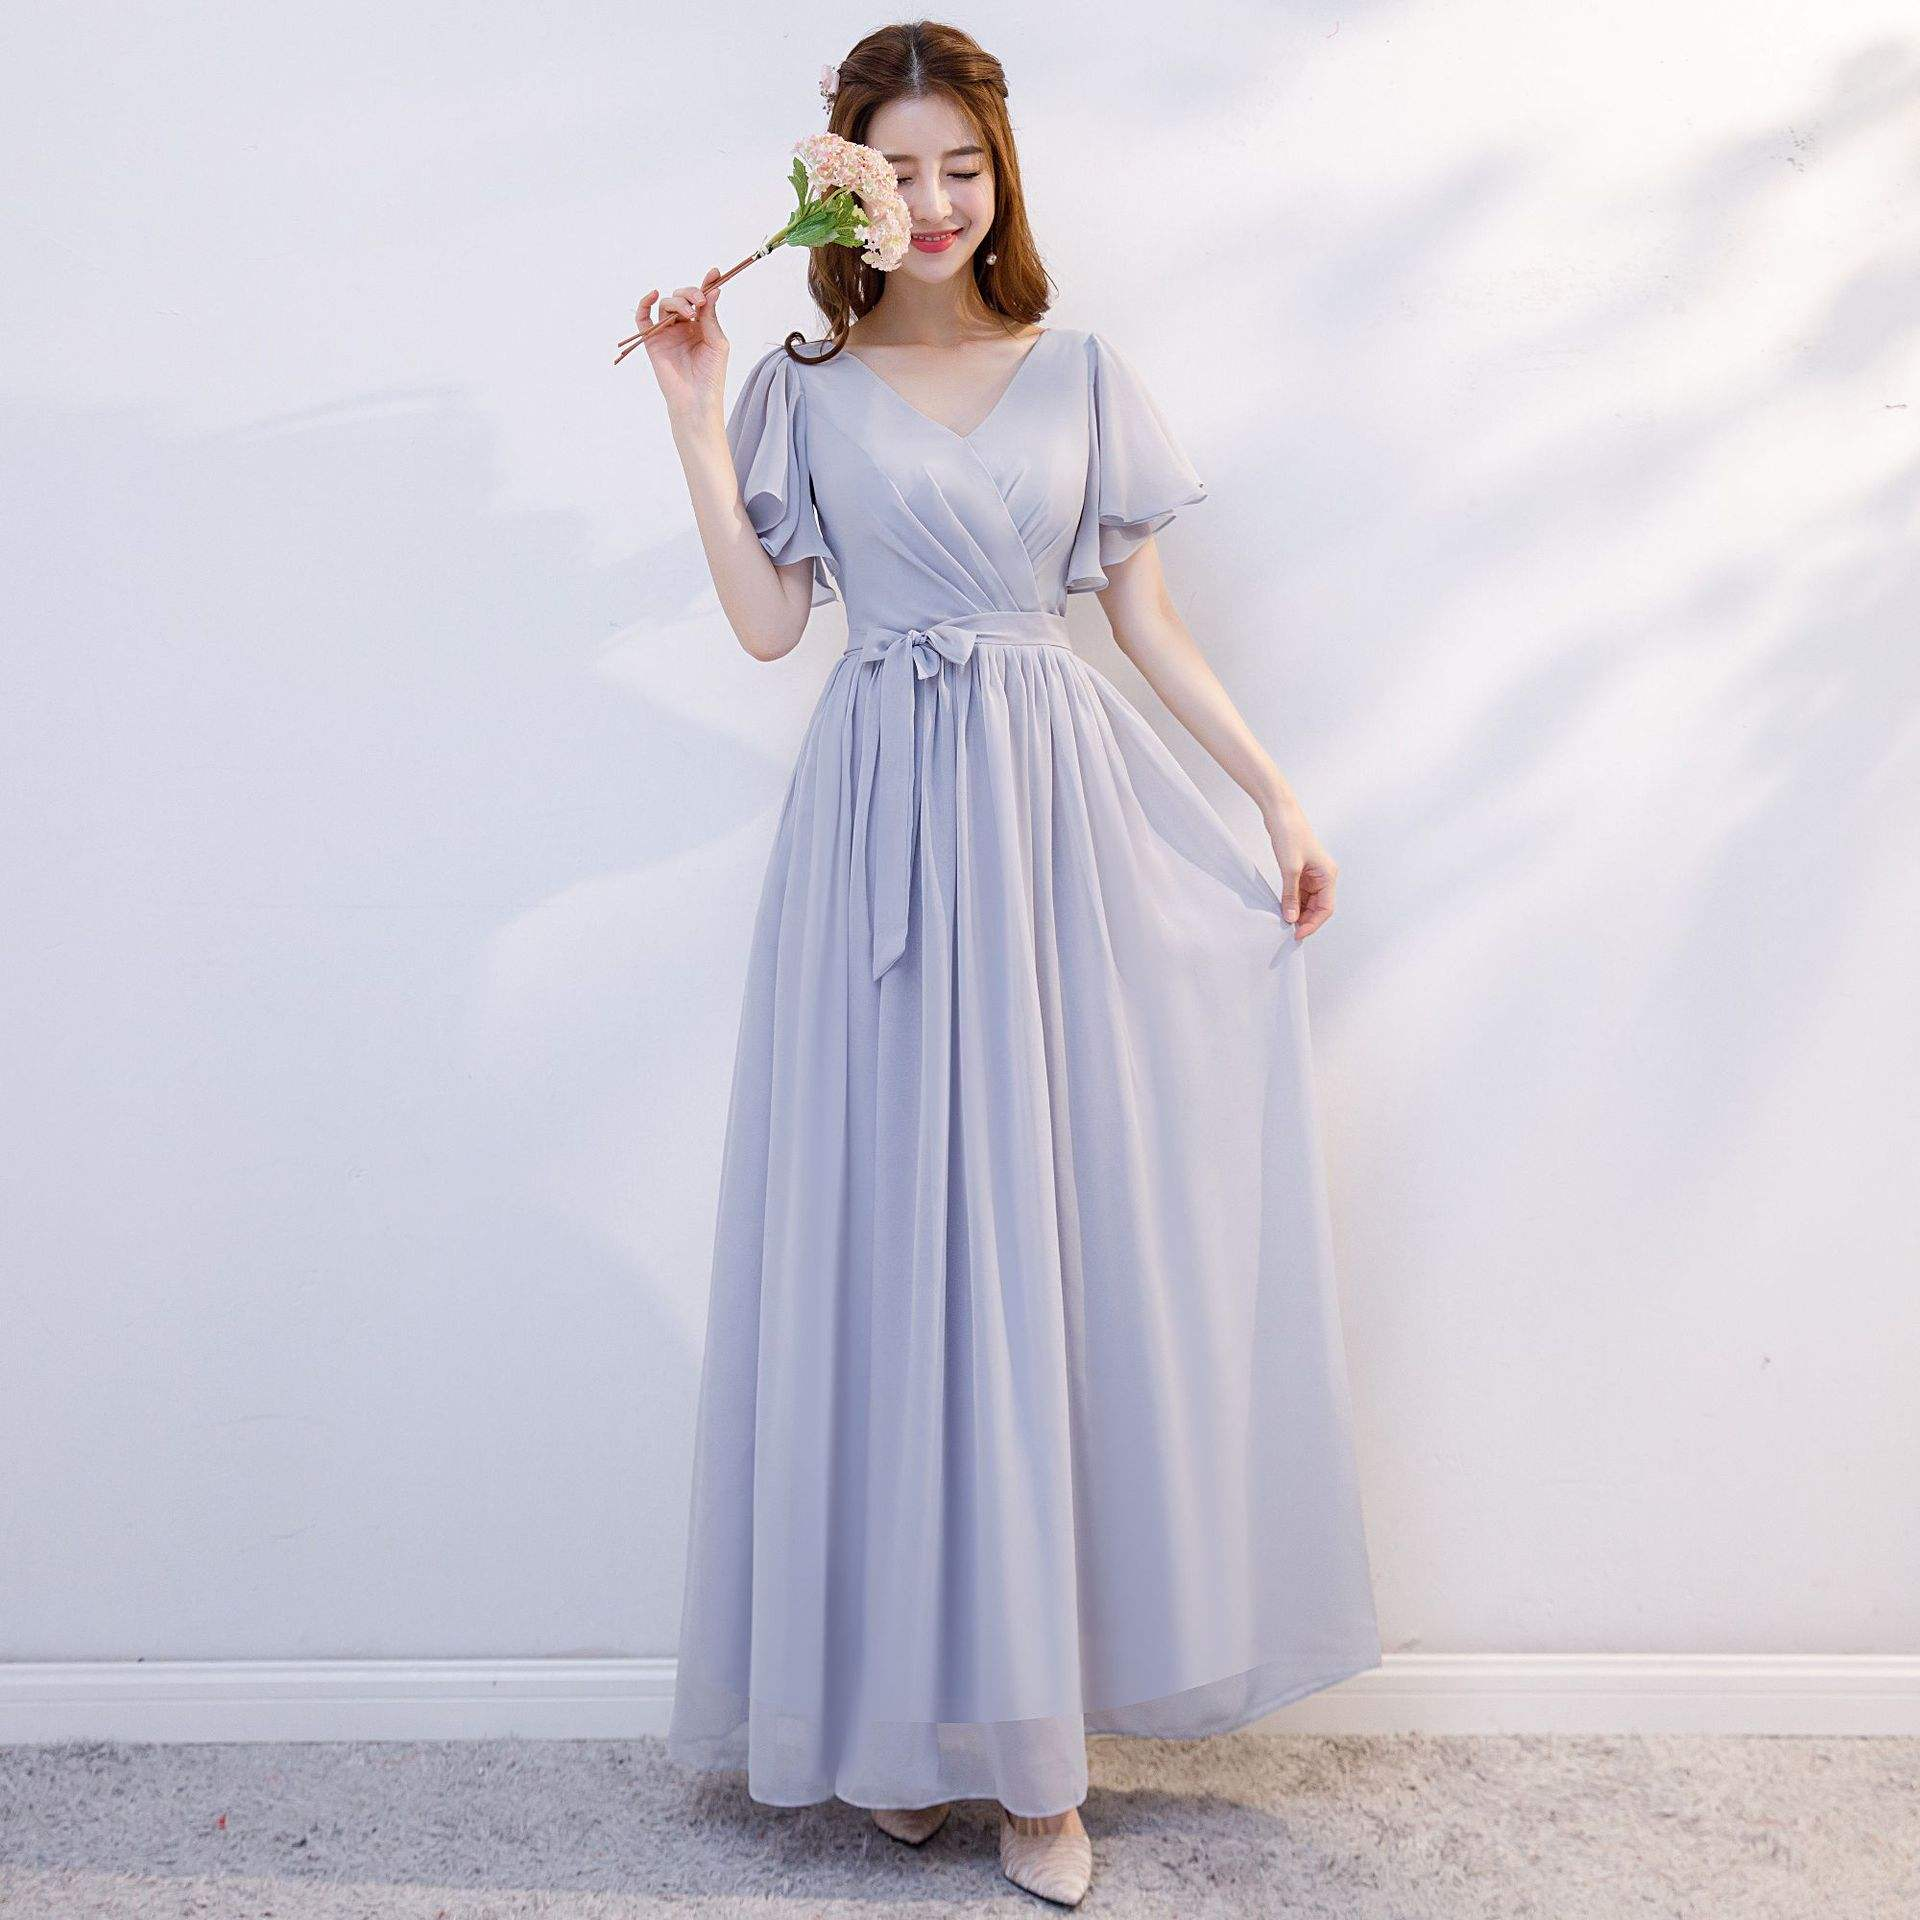 Bridesmaid Dresses High Quality Classic Wedding Party Bridesmaid Long Ball Gown Formal Dresses For Ladies